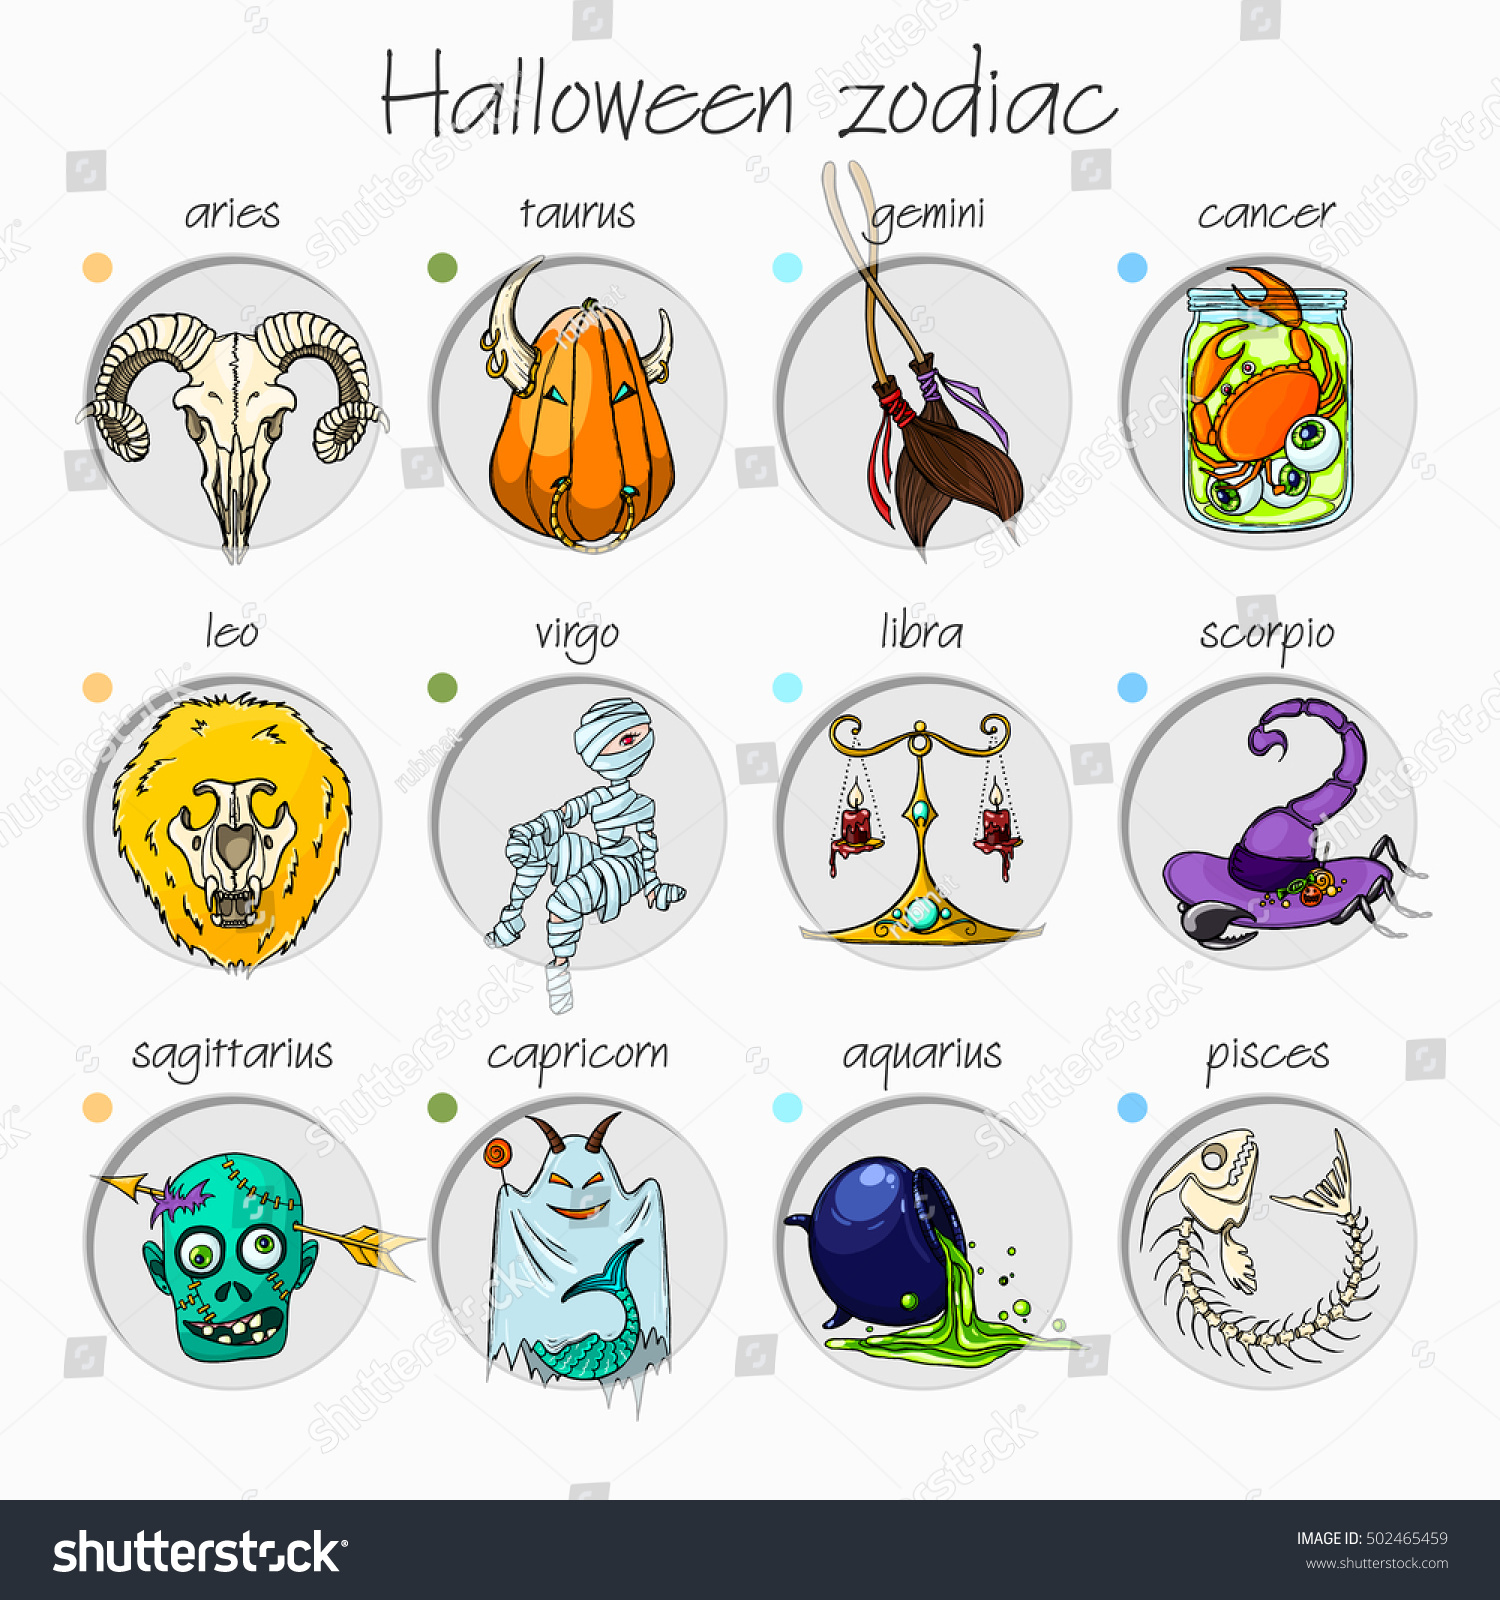 Colorful Funny Halloween Zodiac Signs All Stock Vector Royalty Free